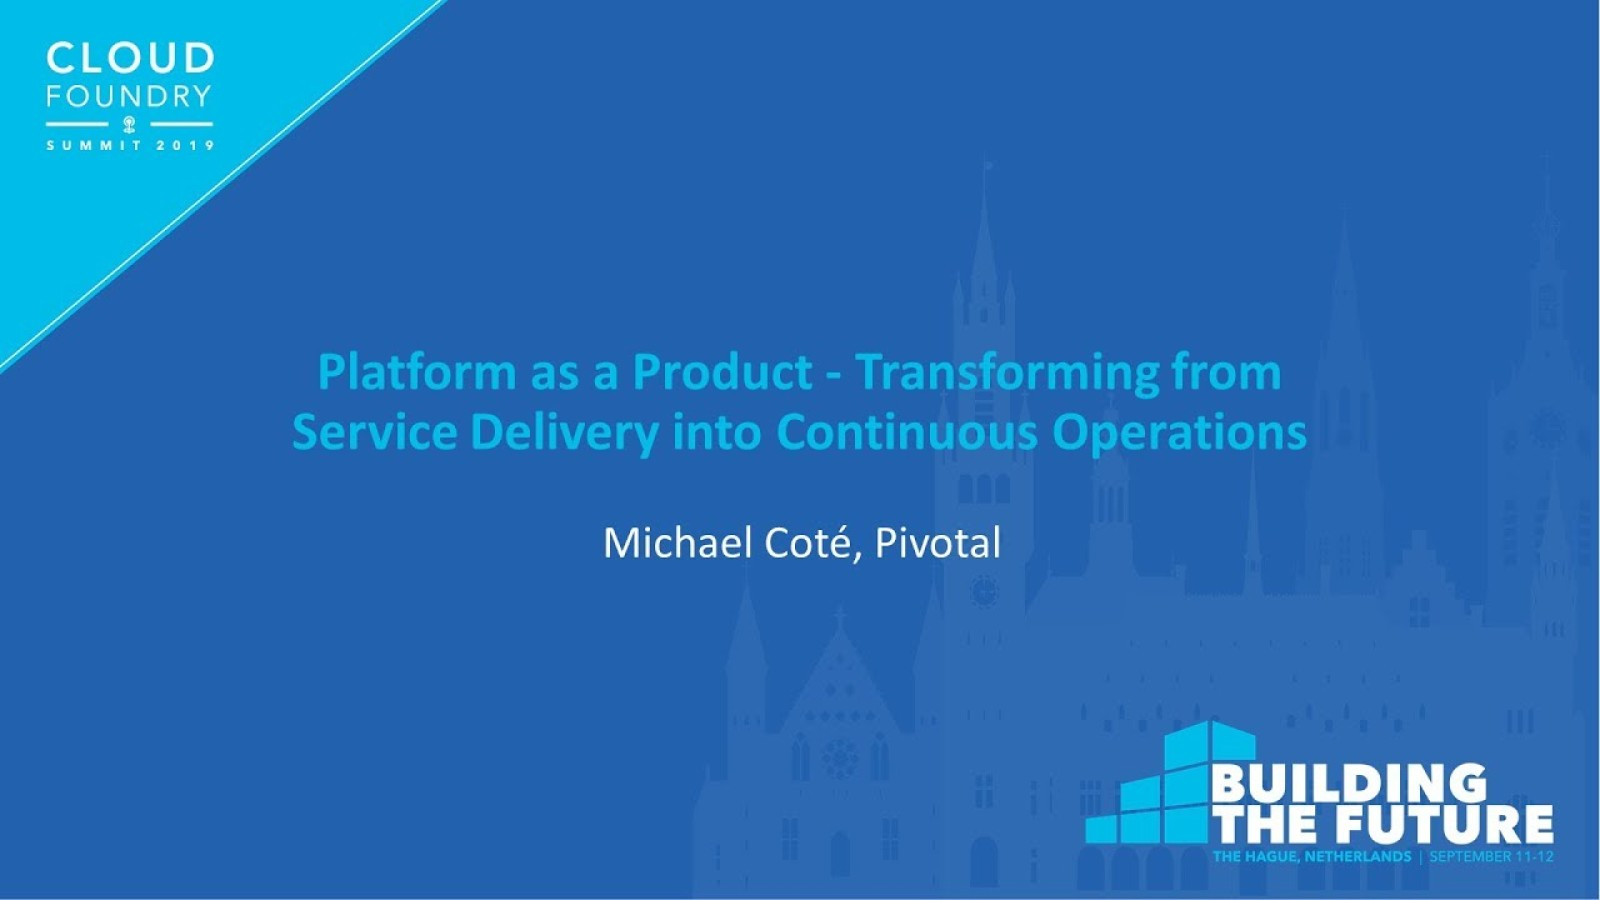 Platform as a Product - Transforming from Service Delivery into Continuous Operations